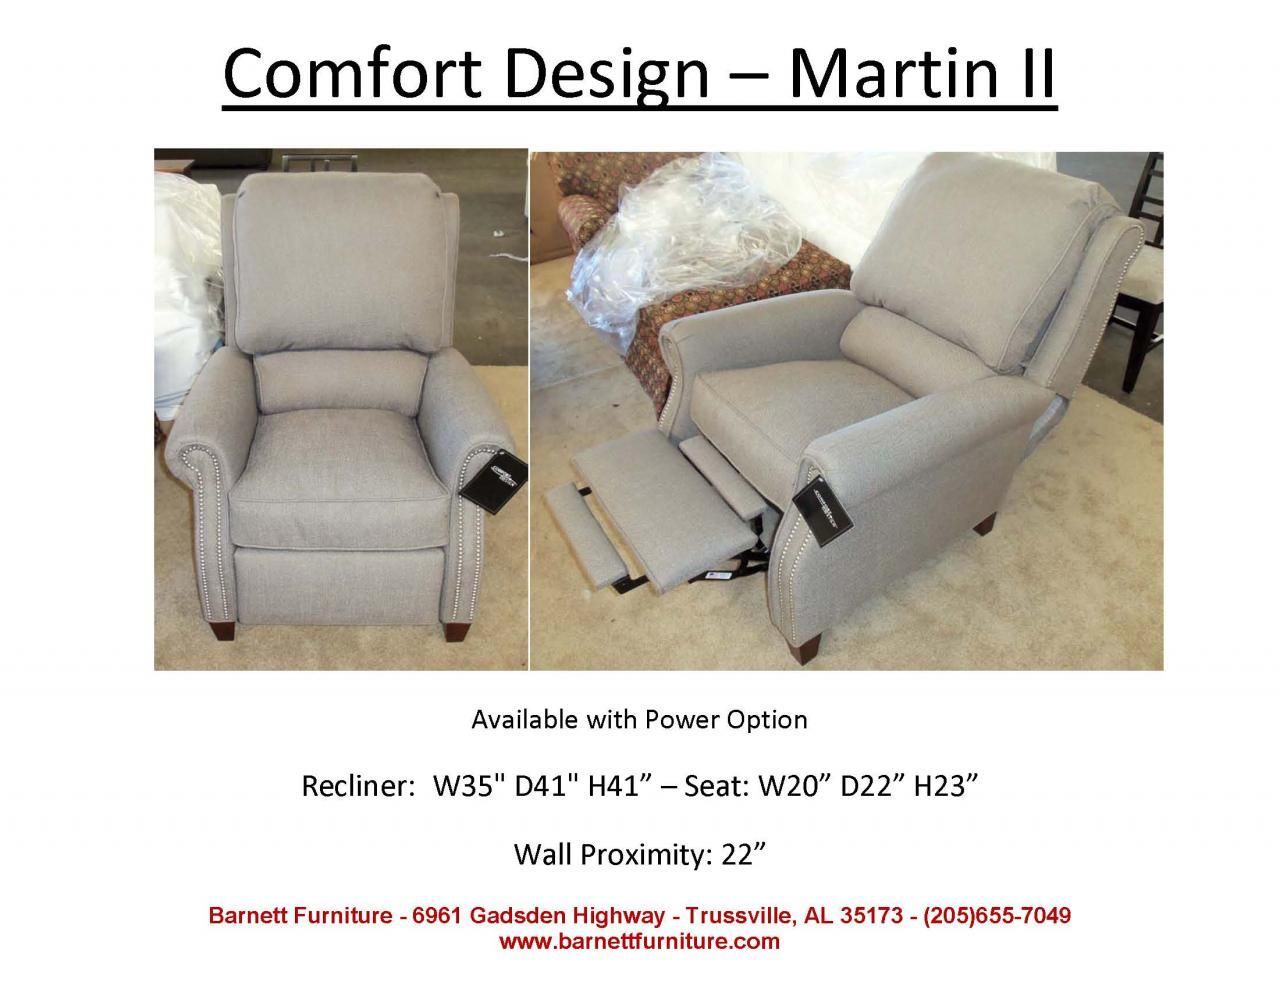 Charmant Comfort Design Martin II Recliner. You Choose The Fabric Or Leather.